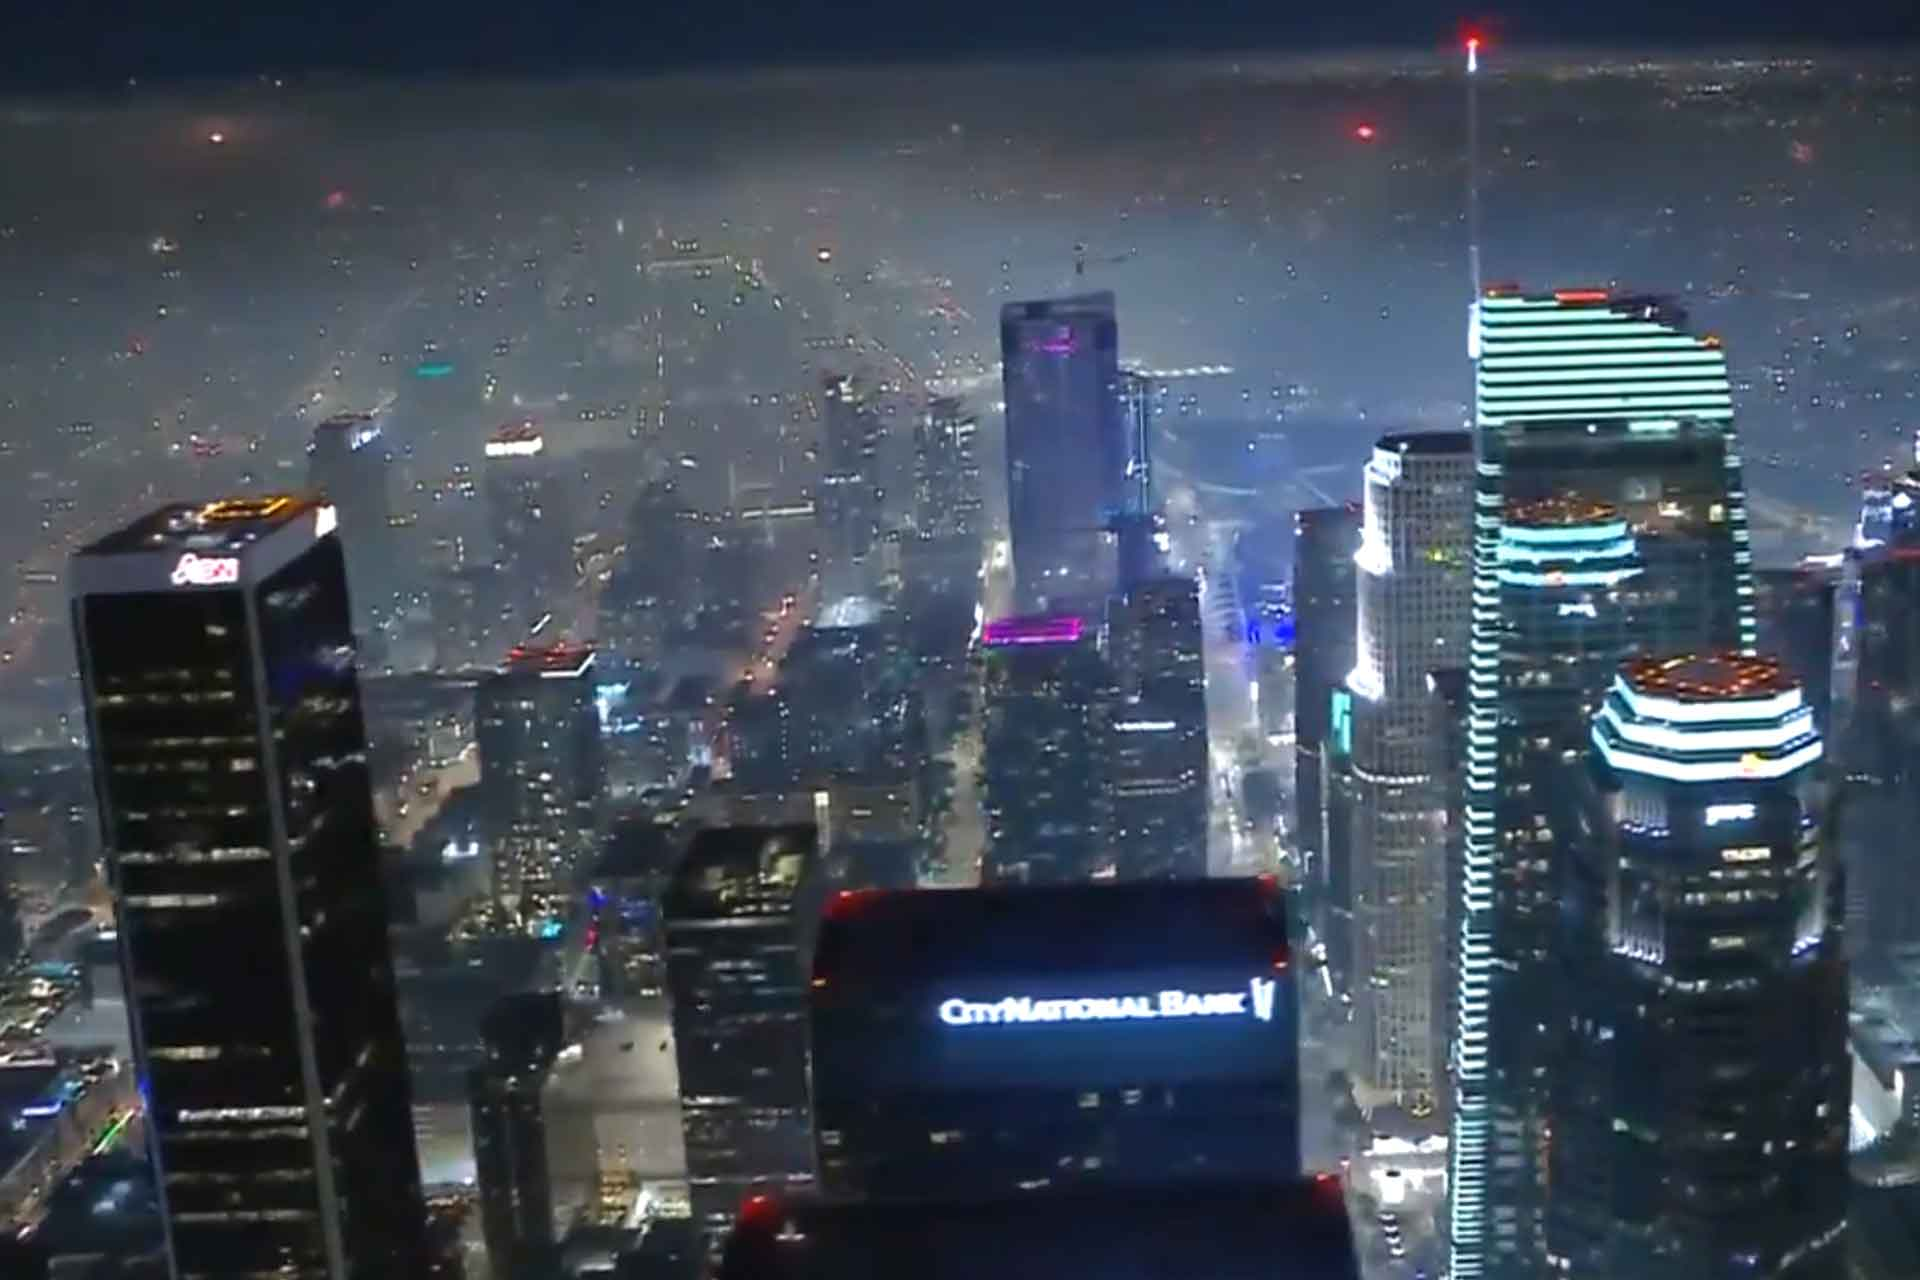 Los Angeles Goes Full Blade Runner On July 4th